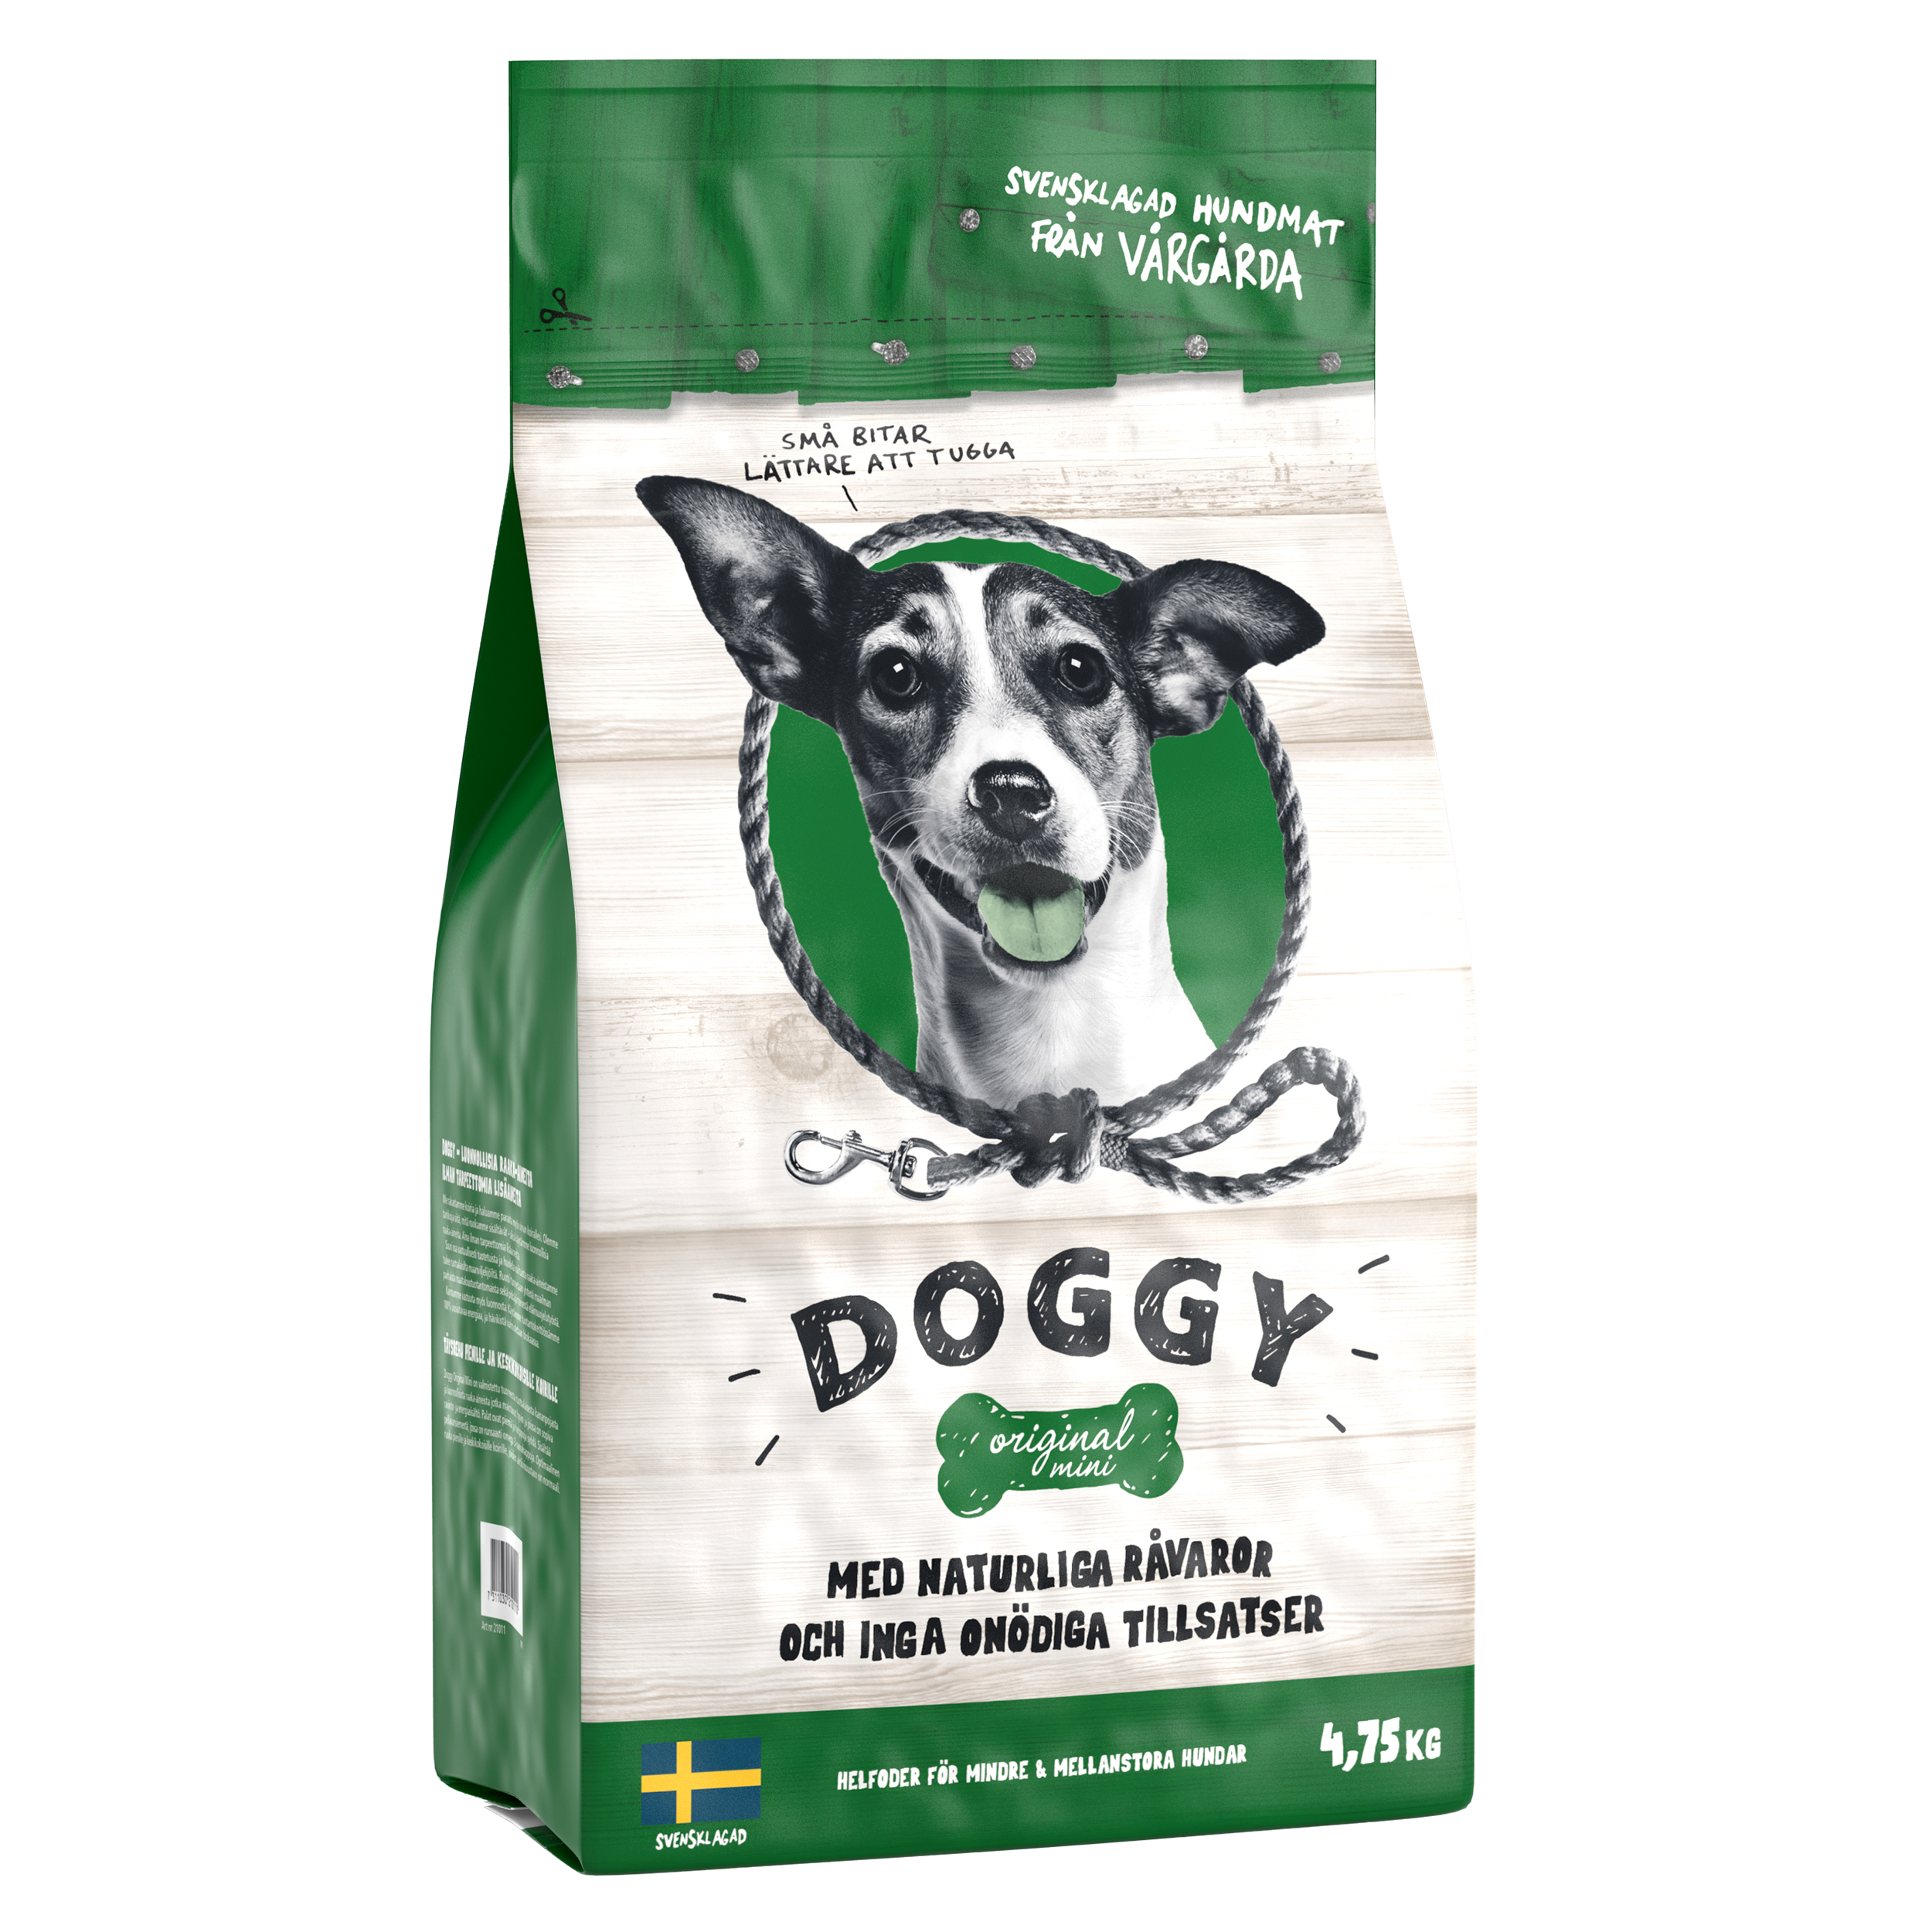 Doggy Adult Original Mini m Kyckling 4,75kg